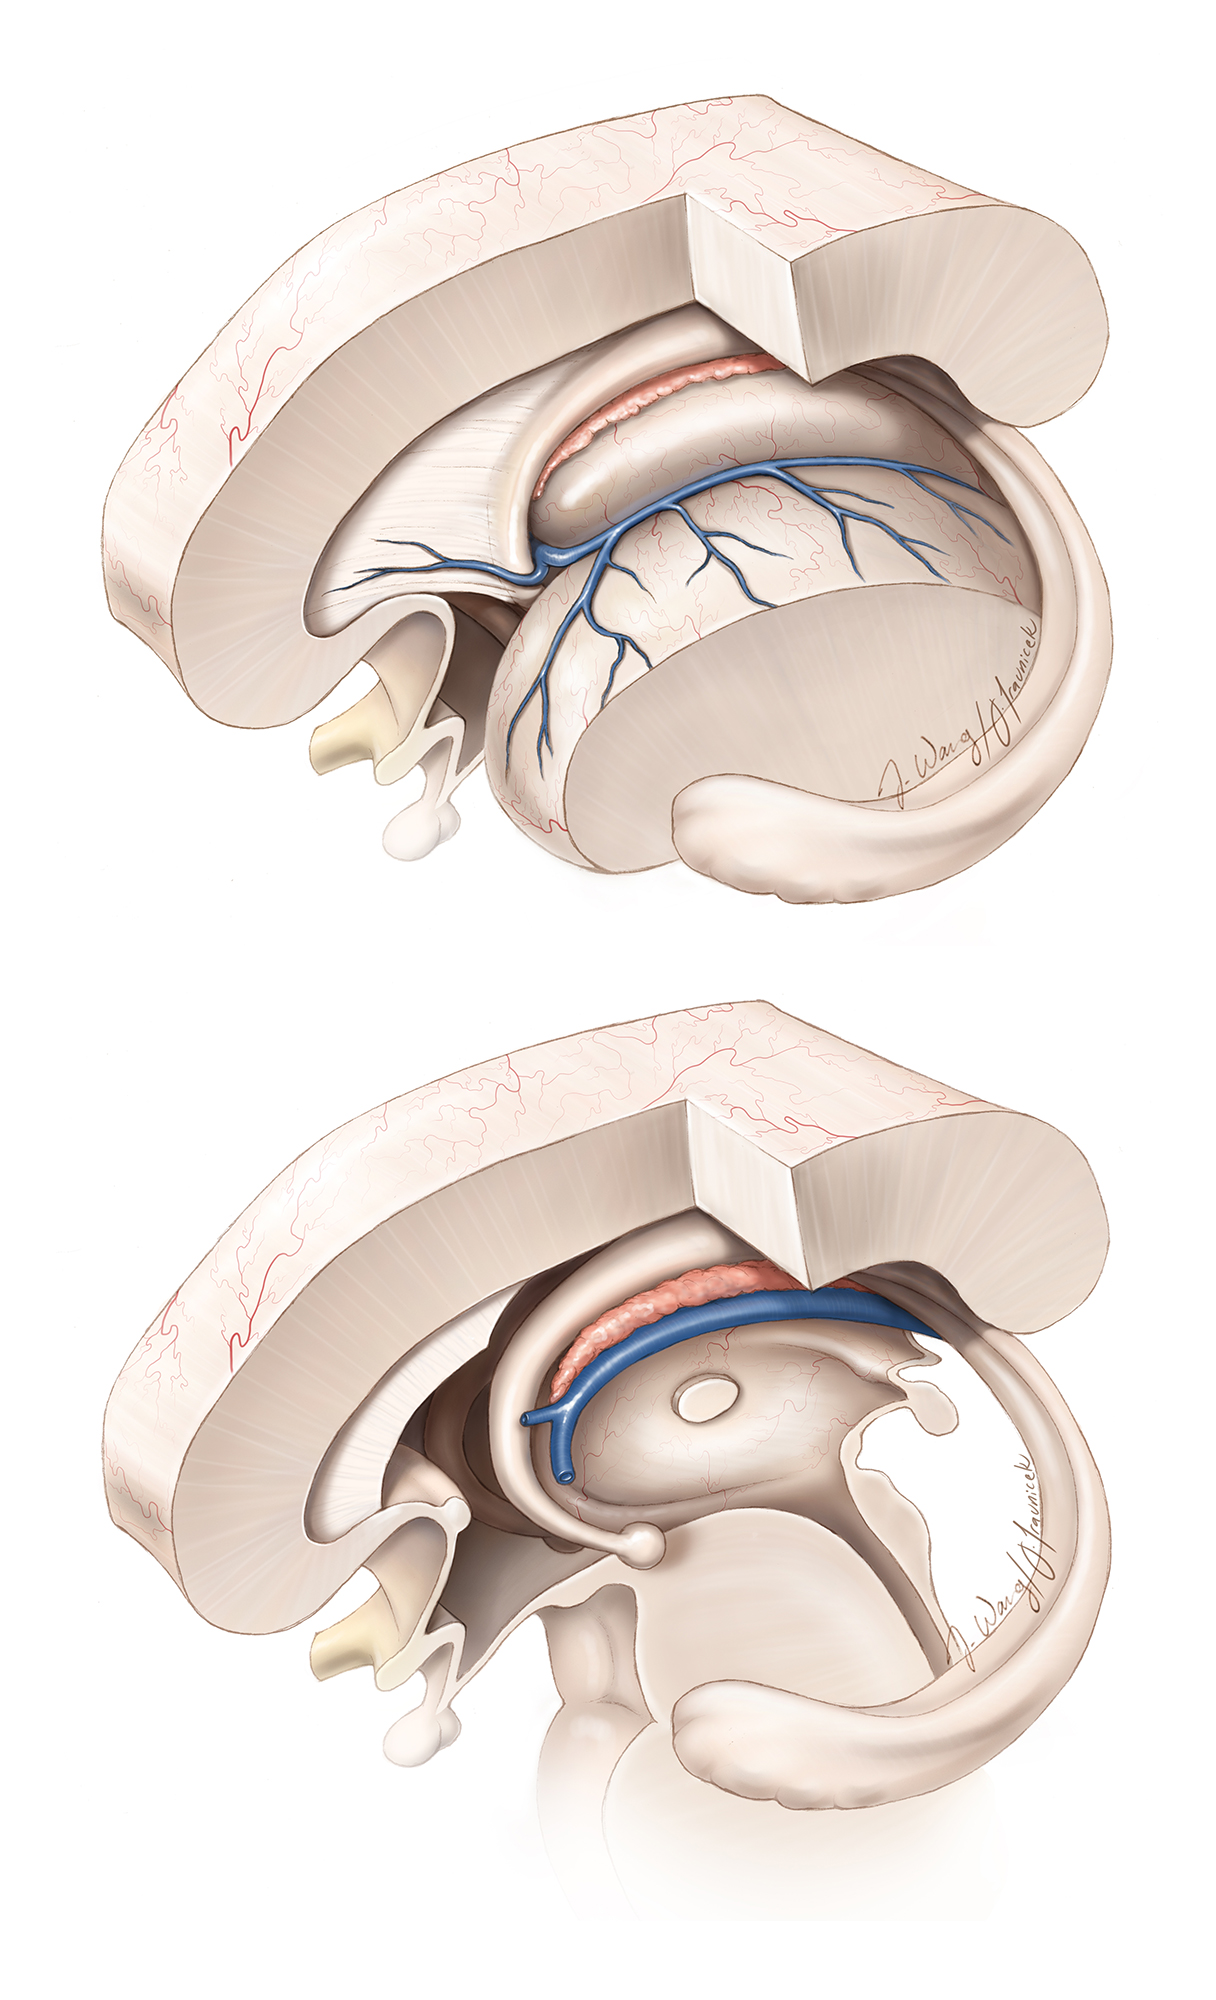 Figure 7: The operative anatomy of the choroid plexus, septal and thalamostriate veins are depicted in these illustrations. Transection of the septal vein at the point where it joins the thalamostriate vein is the key step in expanding the foramen via a small anterior transchoroidal dissection. The fornices and thalamostriate veins are strictly preserved.  Although I prefer to dissect the choroidal fissure along its thalamic side rather than its forniceal side to protect the fornix, the anatomy of the fissure is more likely to dictate the optimal side of dissection.  In other words, I do not recommend a uniform dissection strategy (always along the taenia thalami versus the taenia fornix). The fornix forms the borders of the anterior wall of the foramen and should be protected during movements of the instruments.